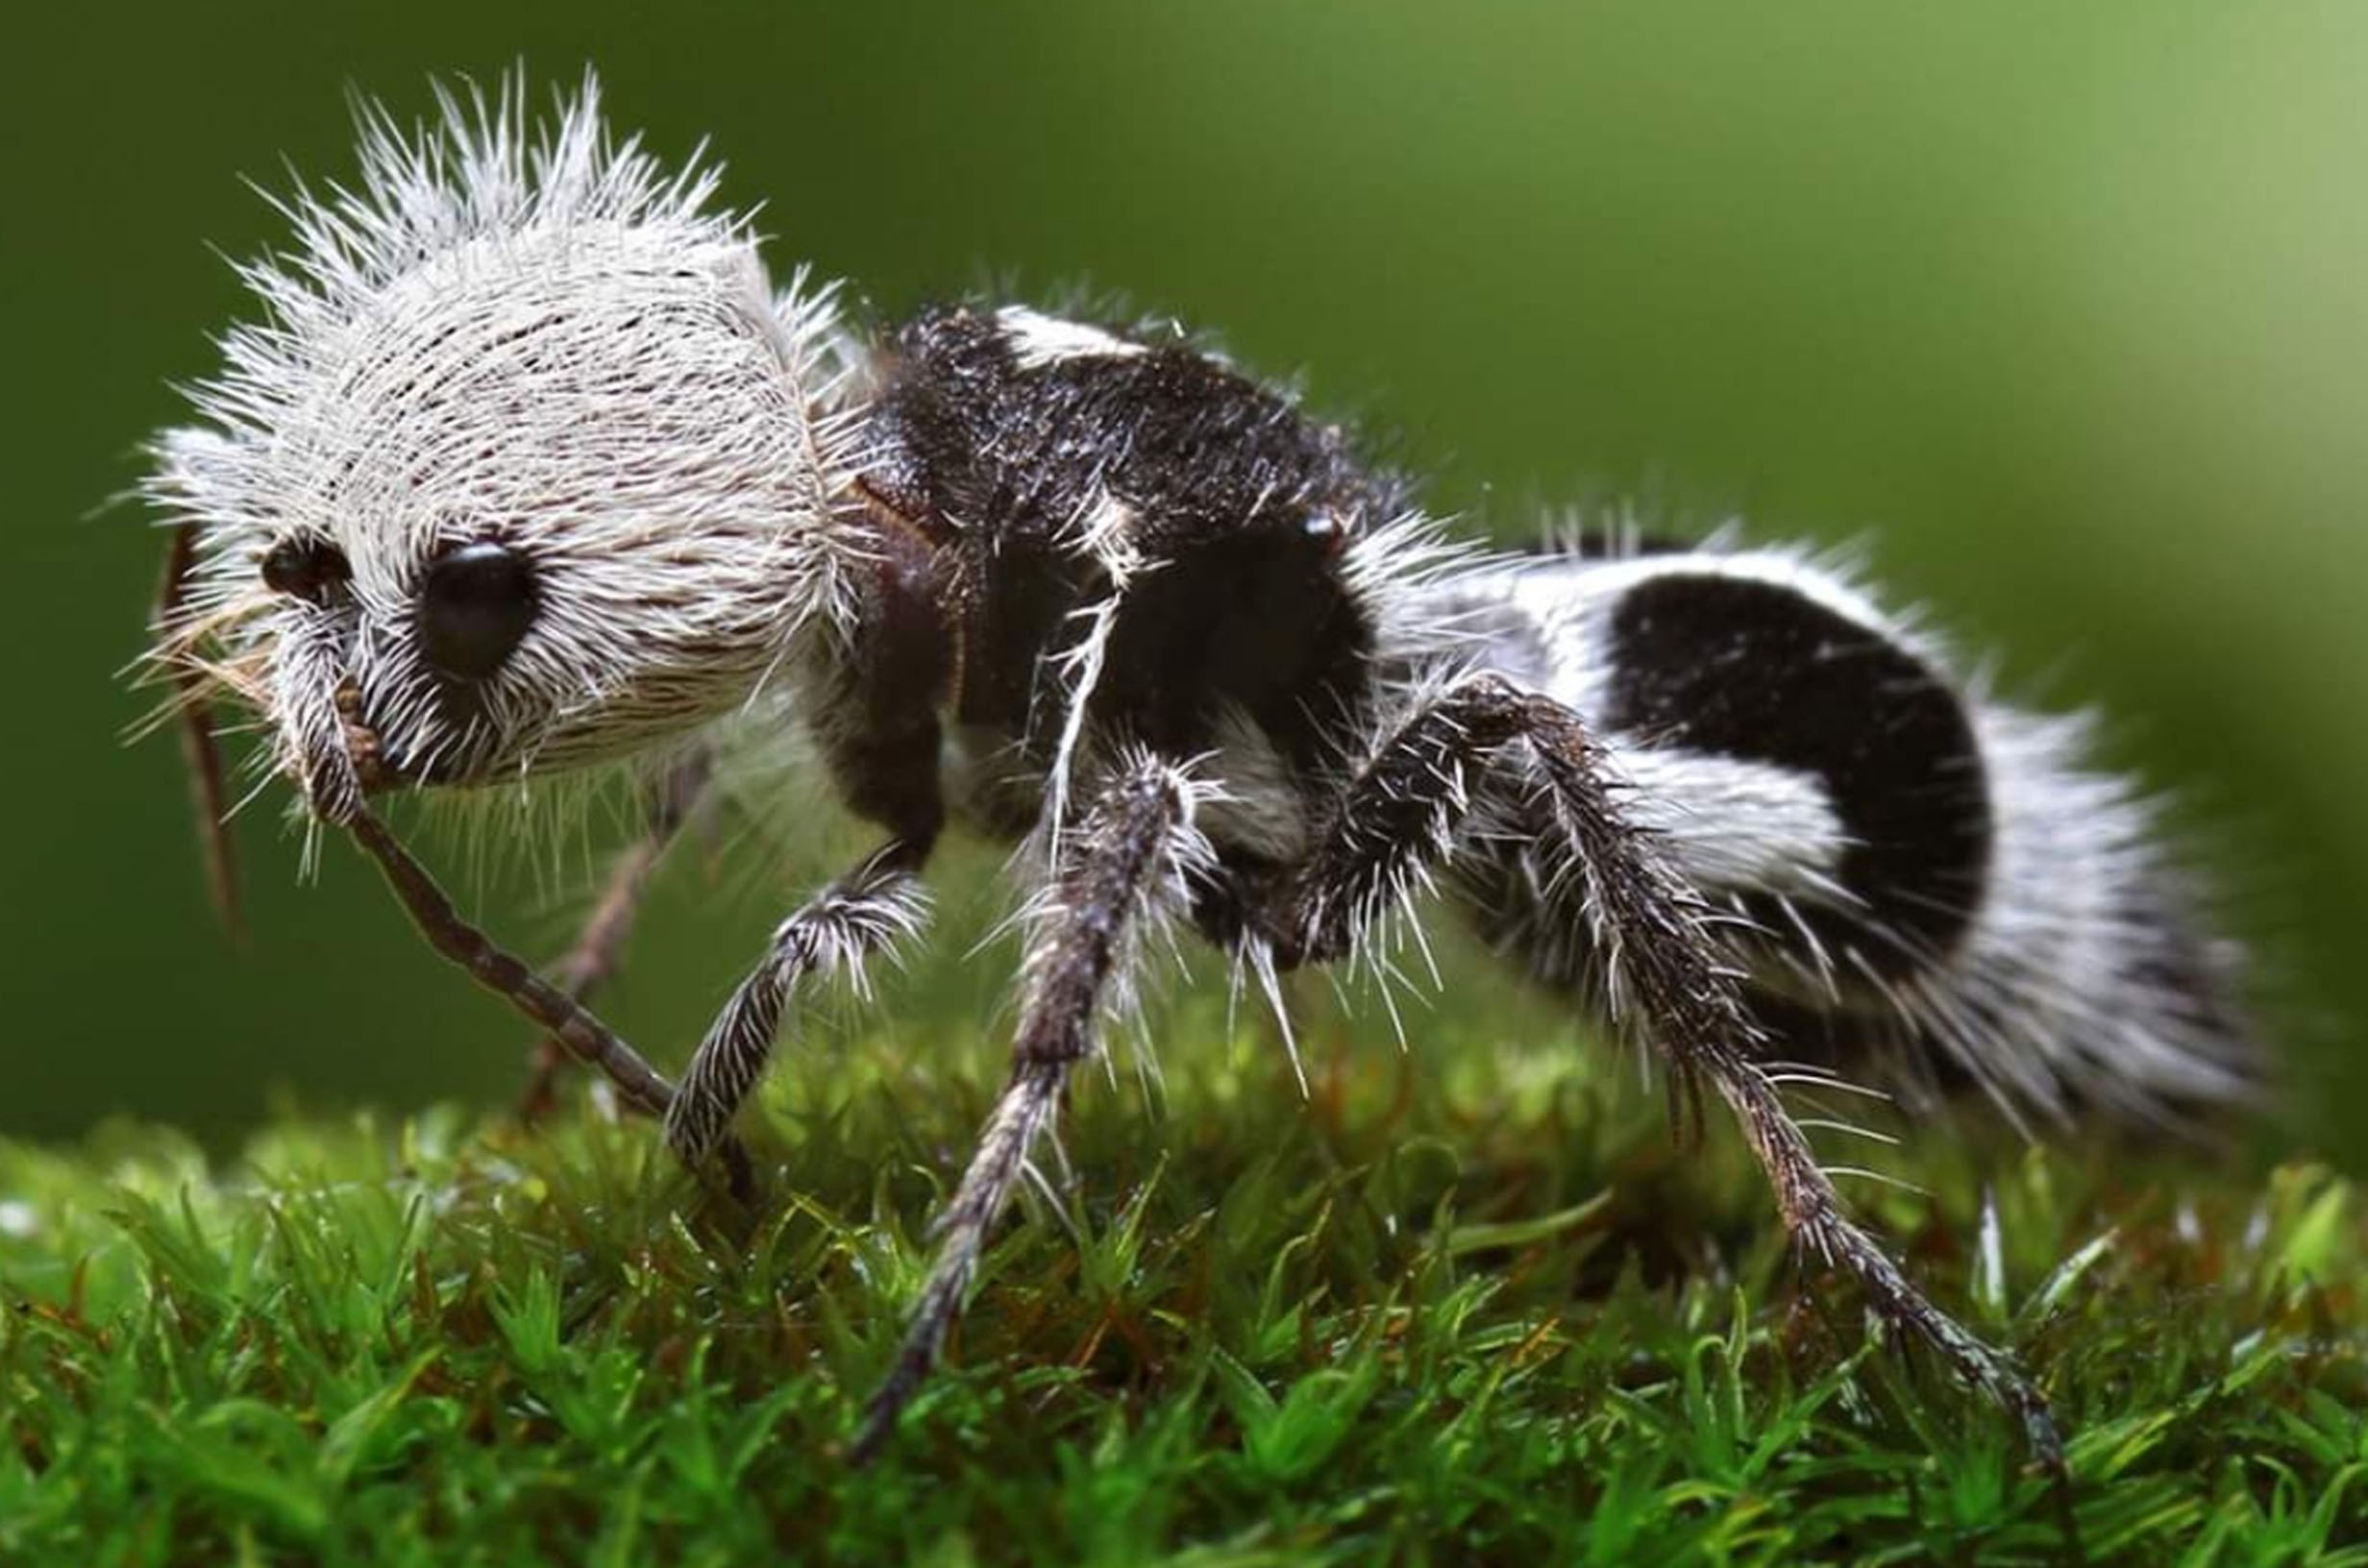 a close up of a fuzzy ant that is colored in a black-and-white pattern similar to a panda